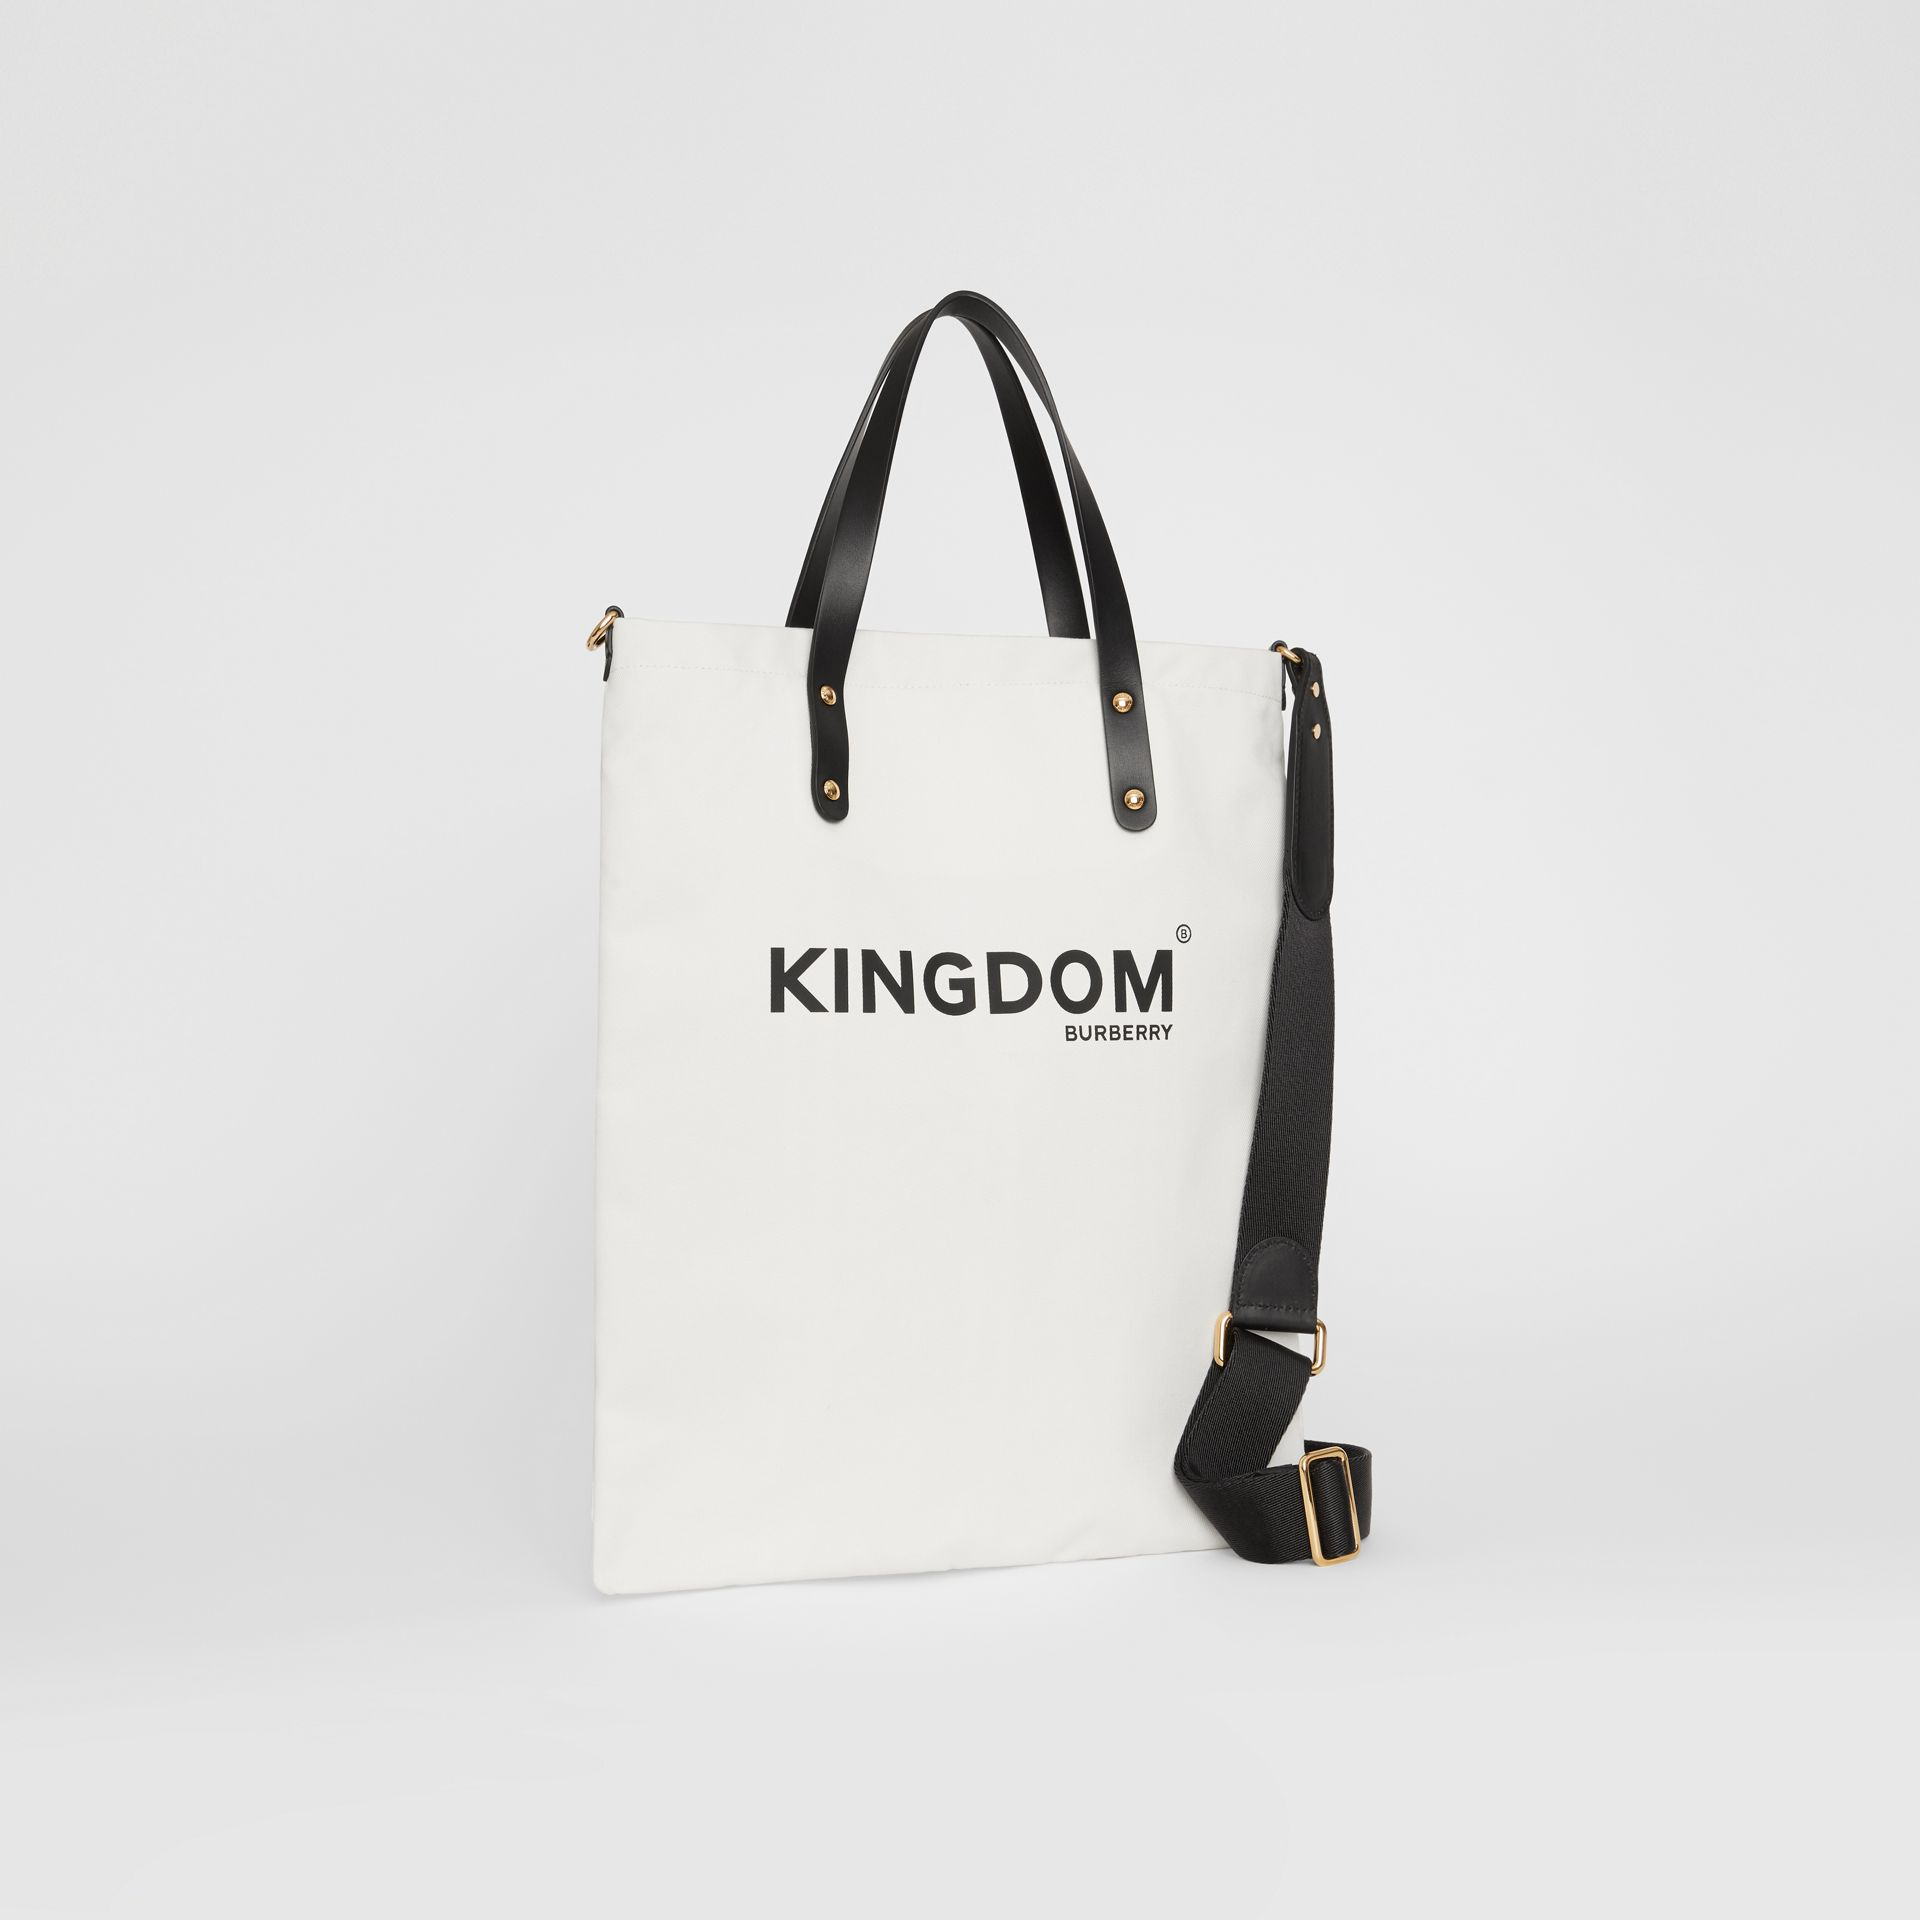 Kingdom Print Cotton Tote in Black | Burberry - gallery image 4